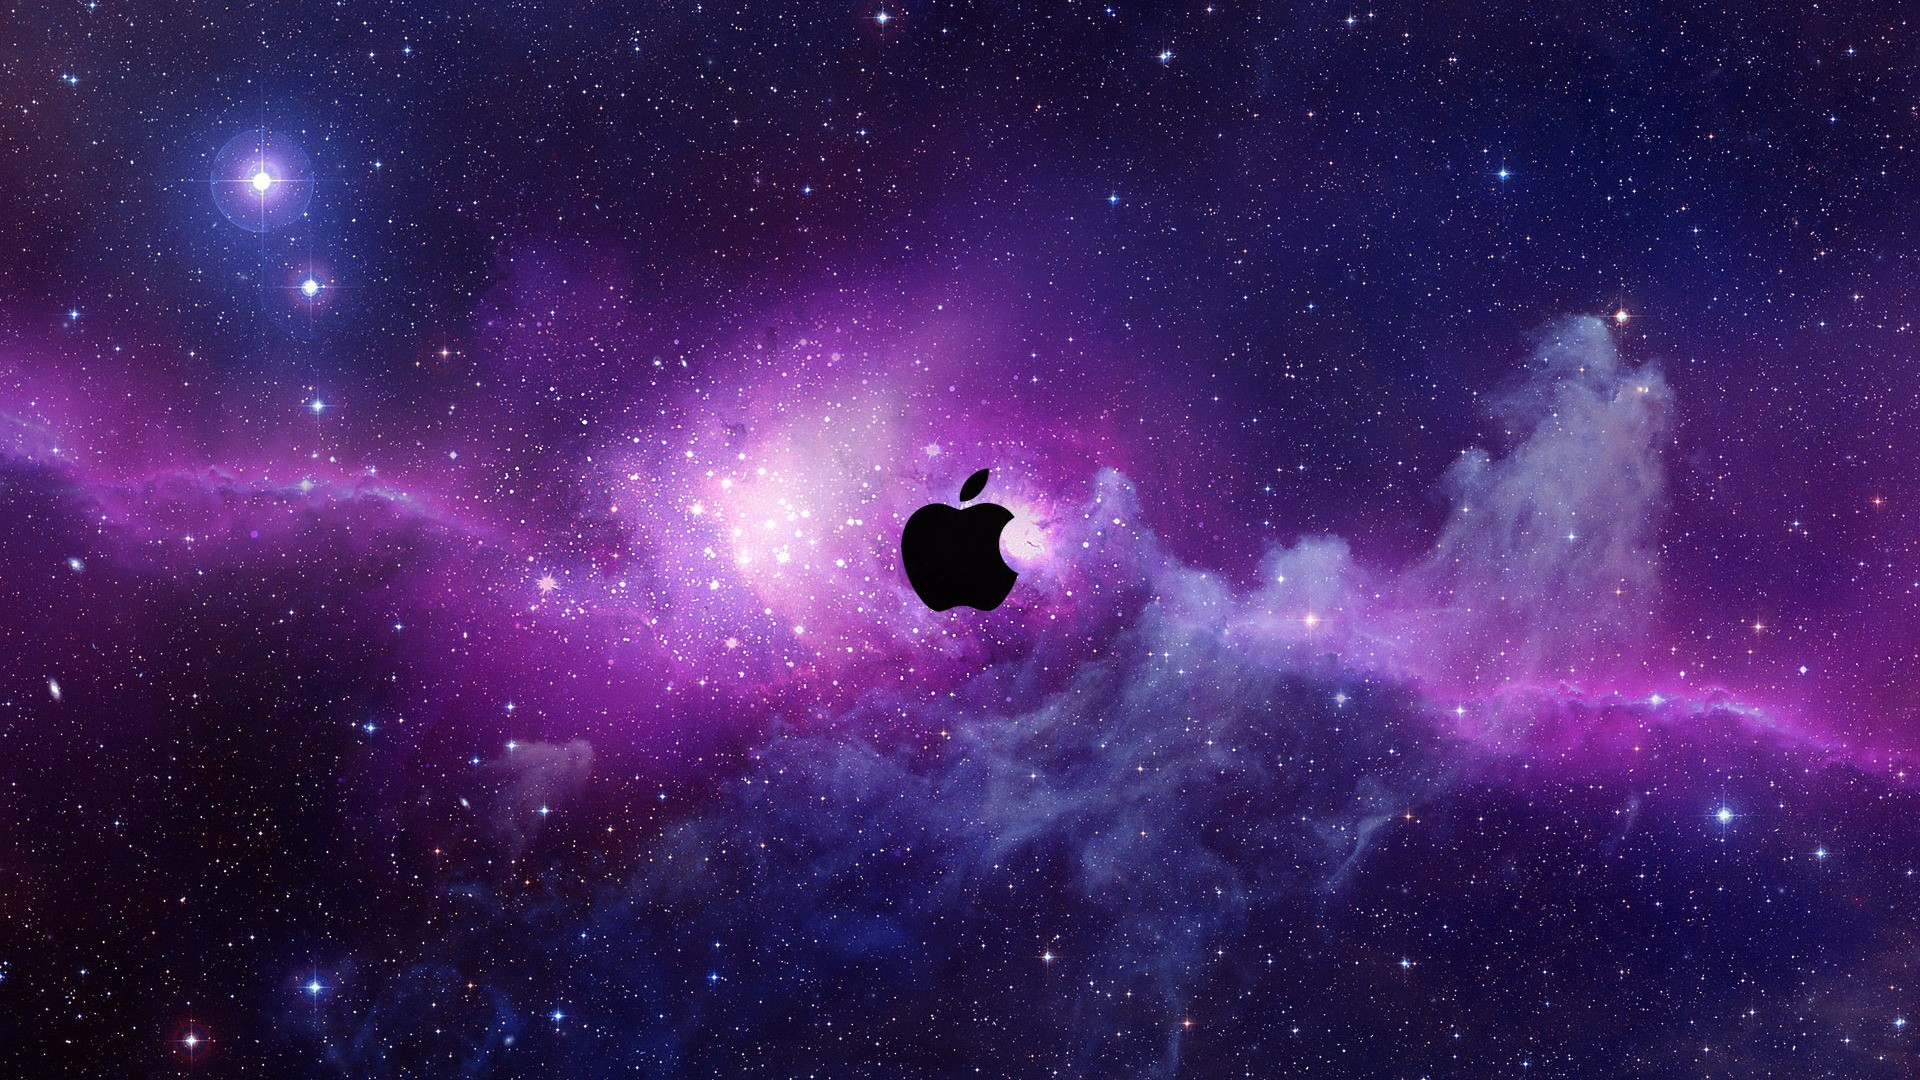 wallpaper.wiki-pictures-apple-space-pic-wpc0011997 | wallpaper.wiki